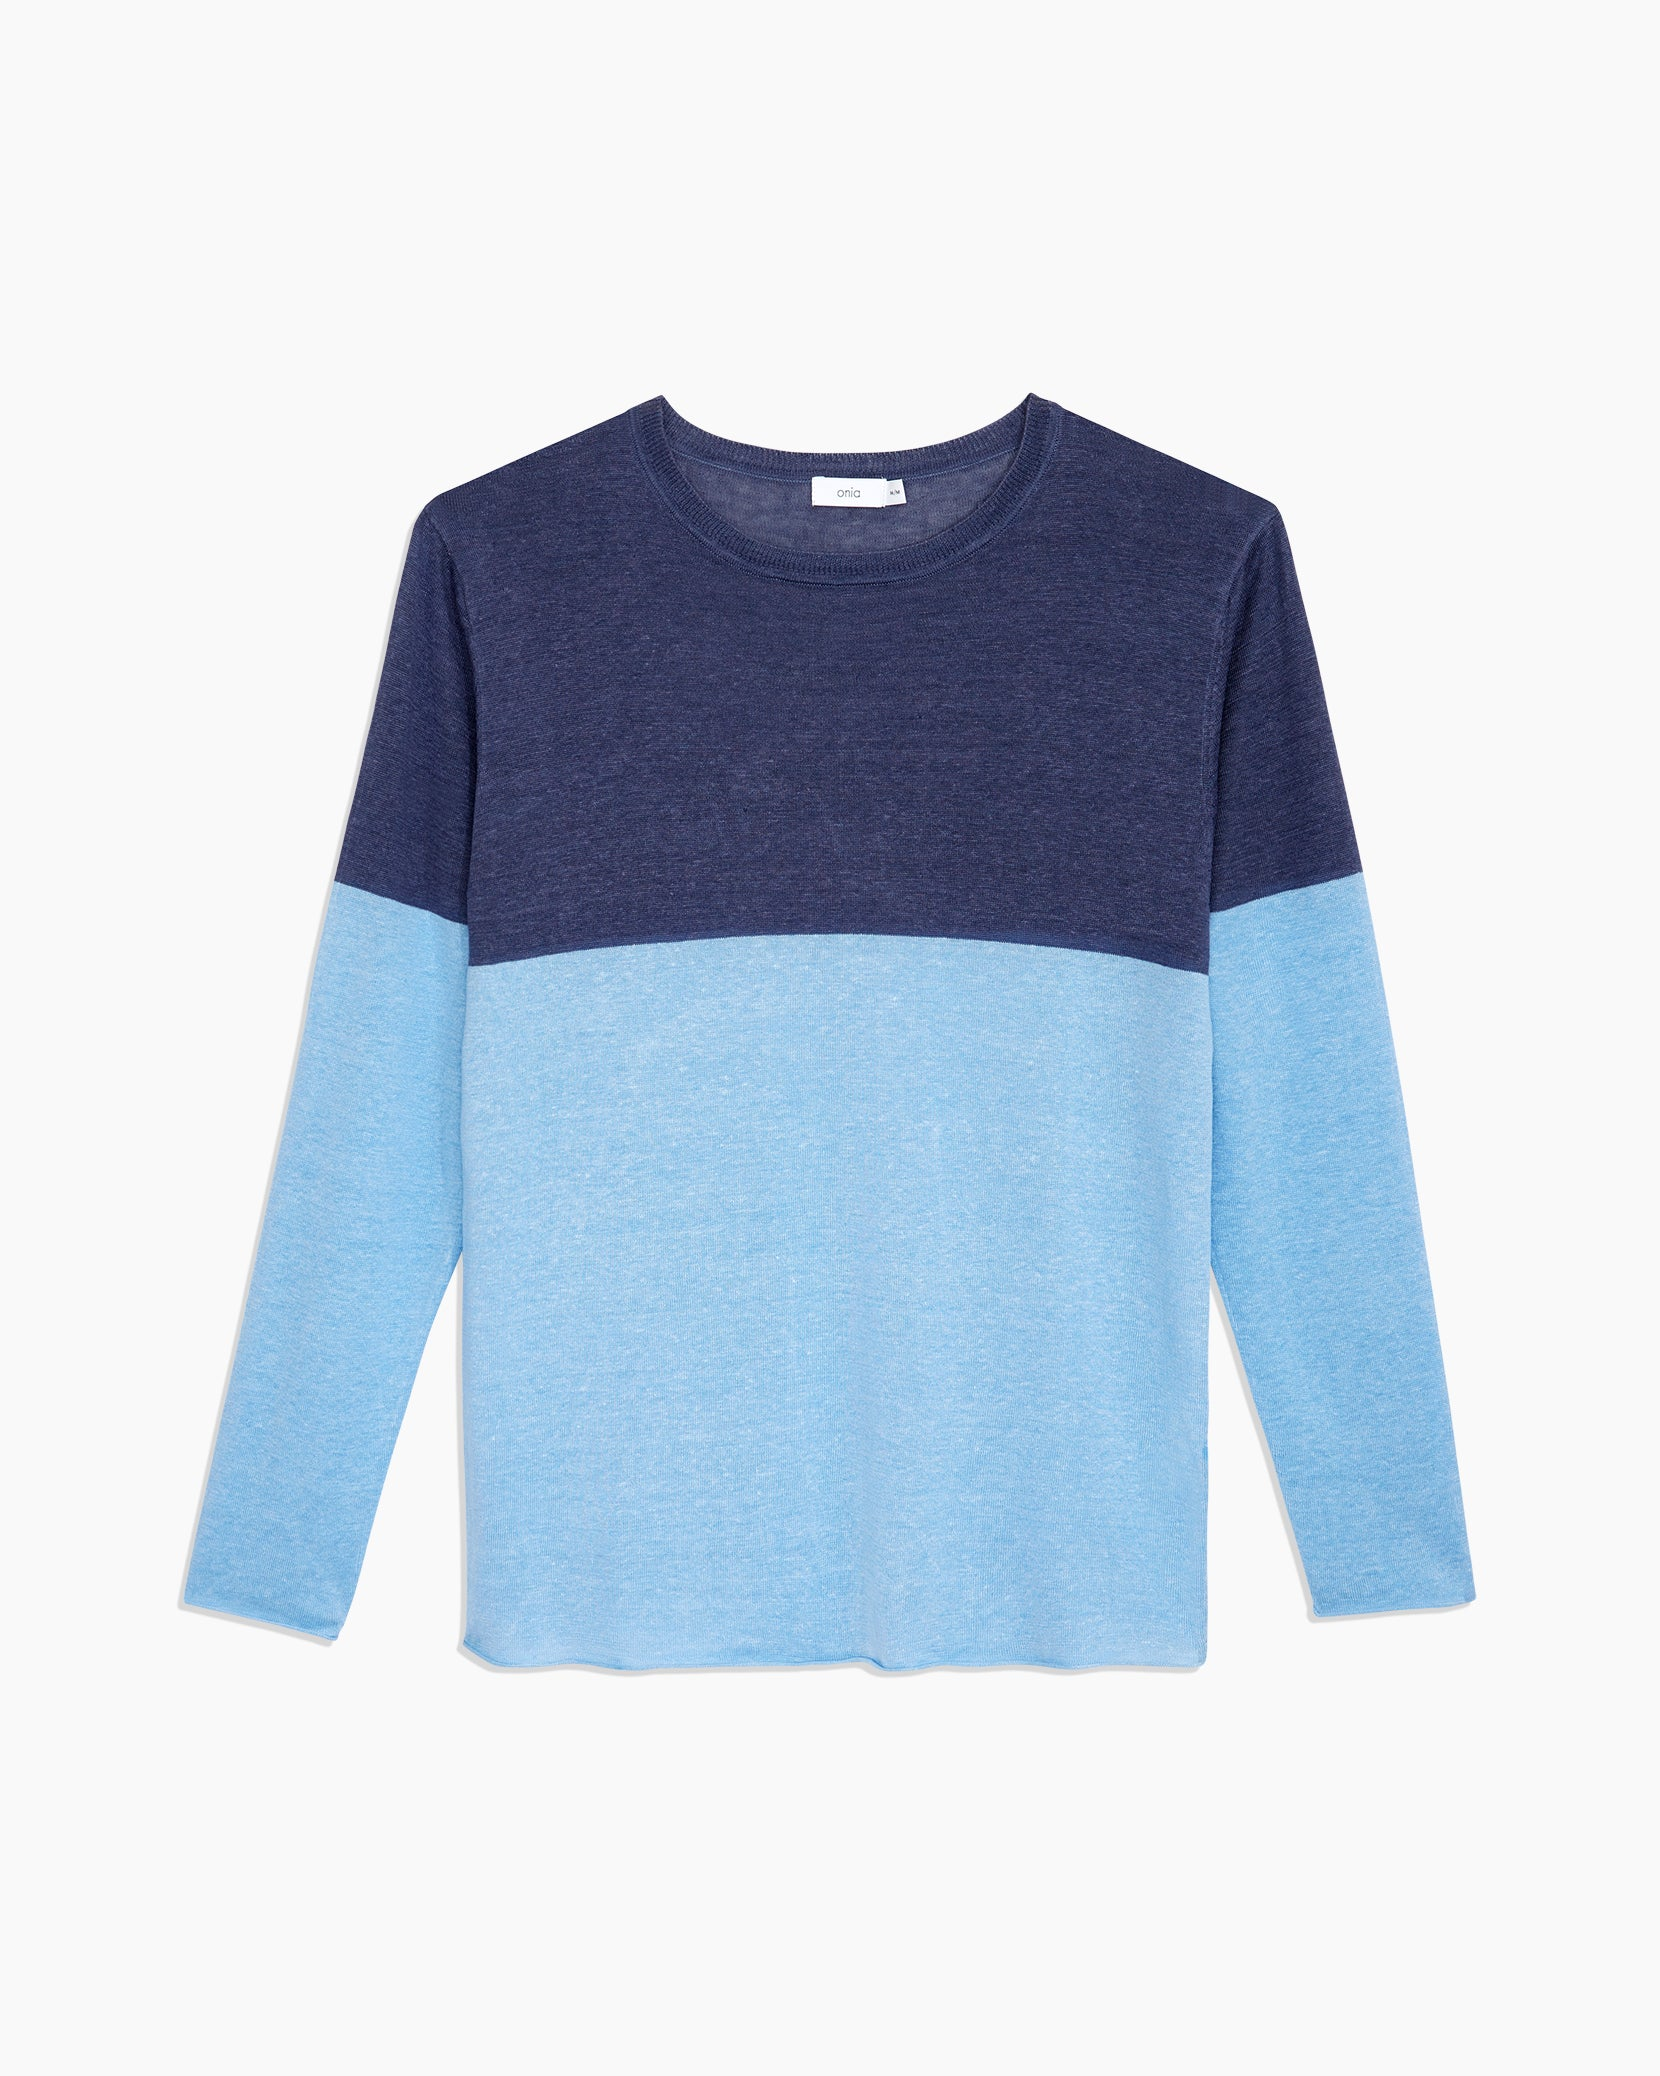 Kevin Crewneck Sweater in Safari Sky - 6 - Onia